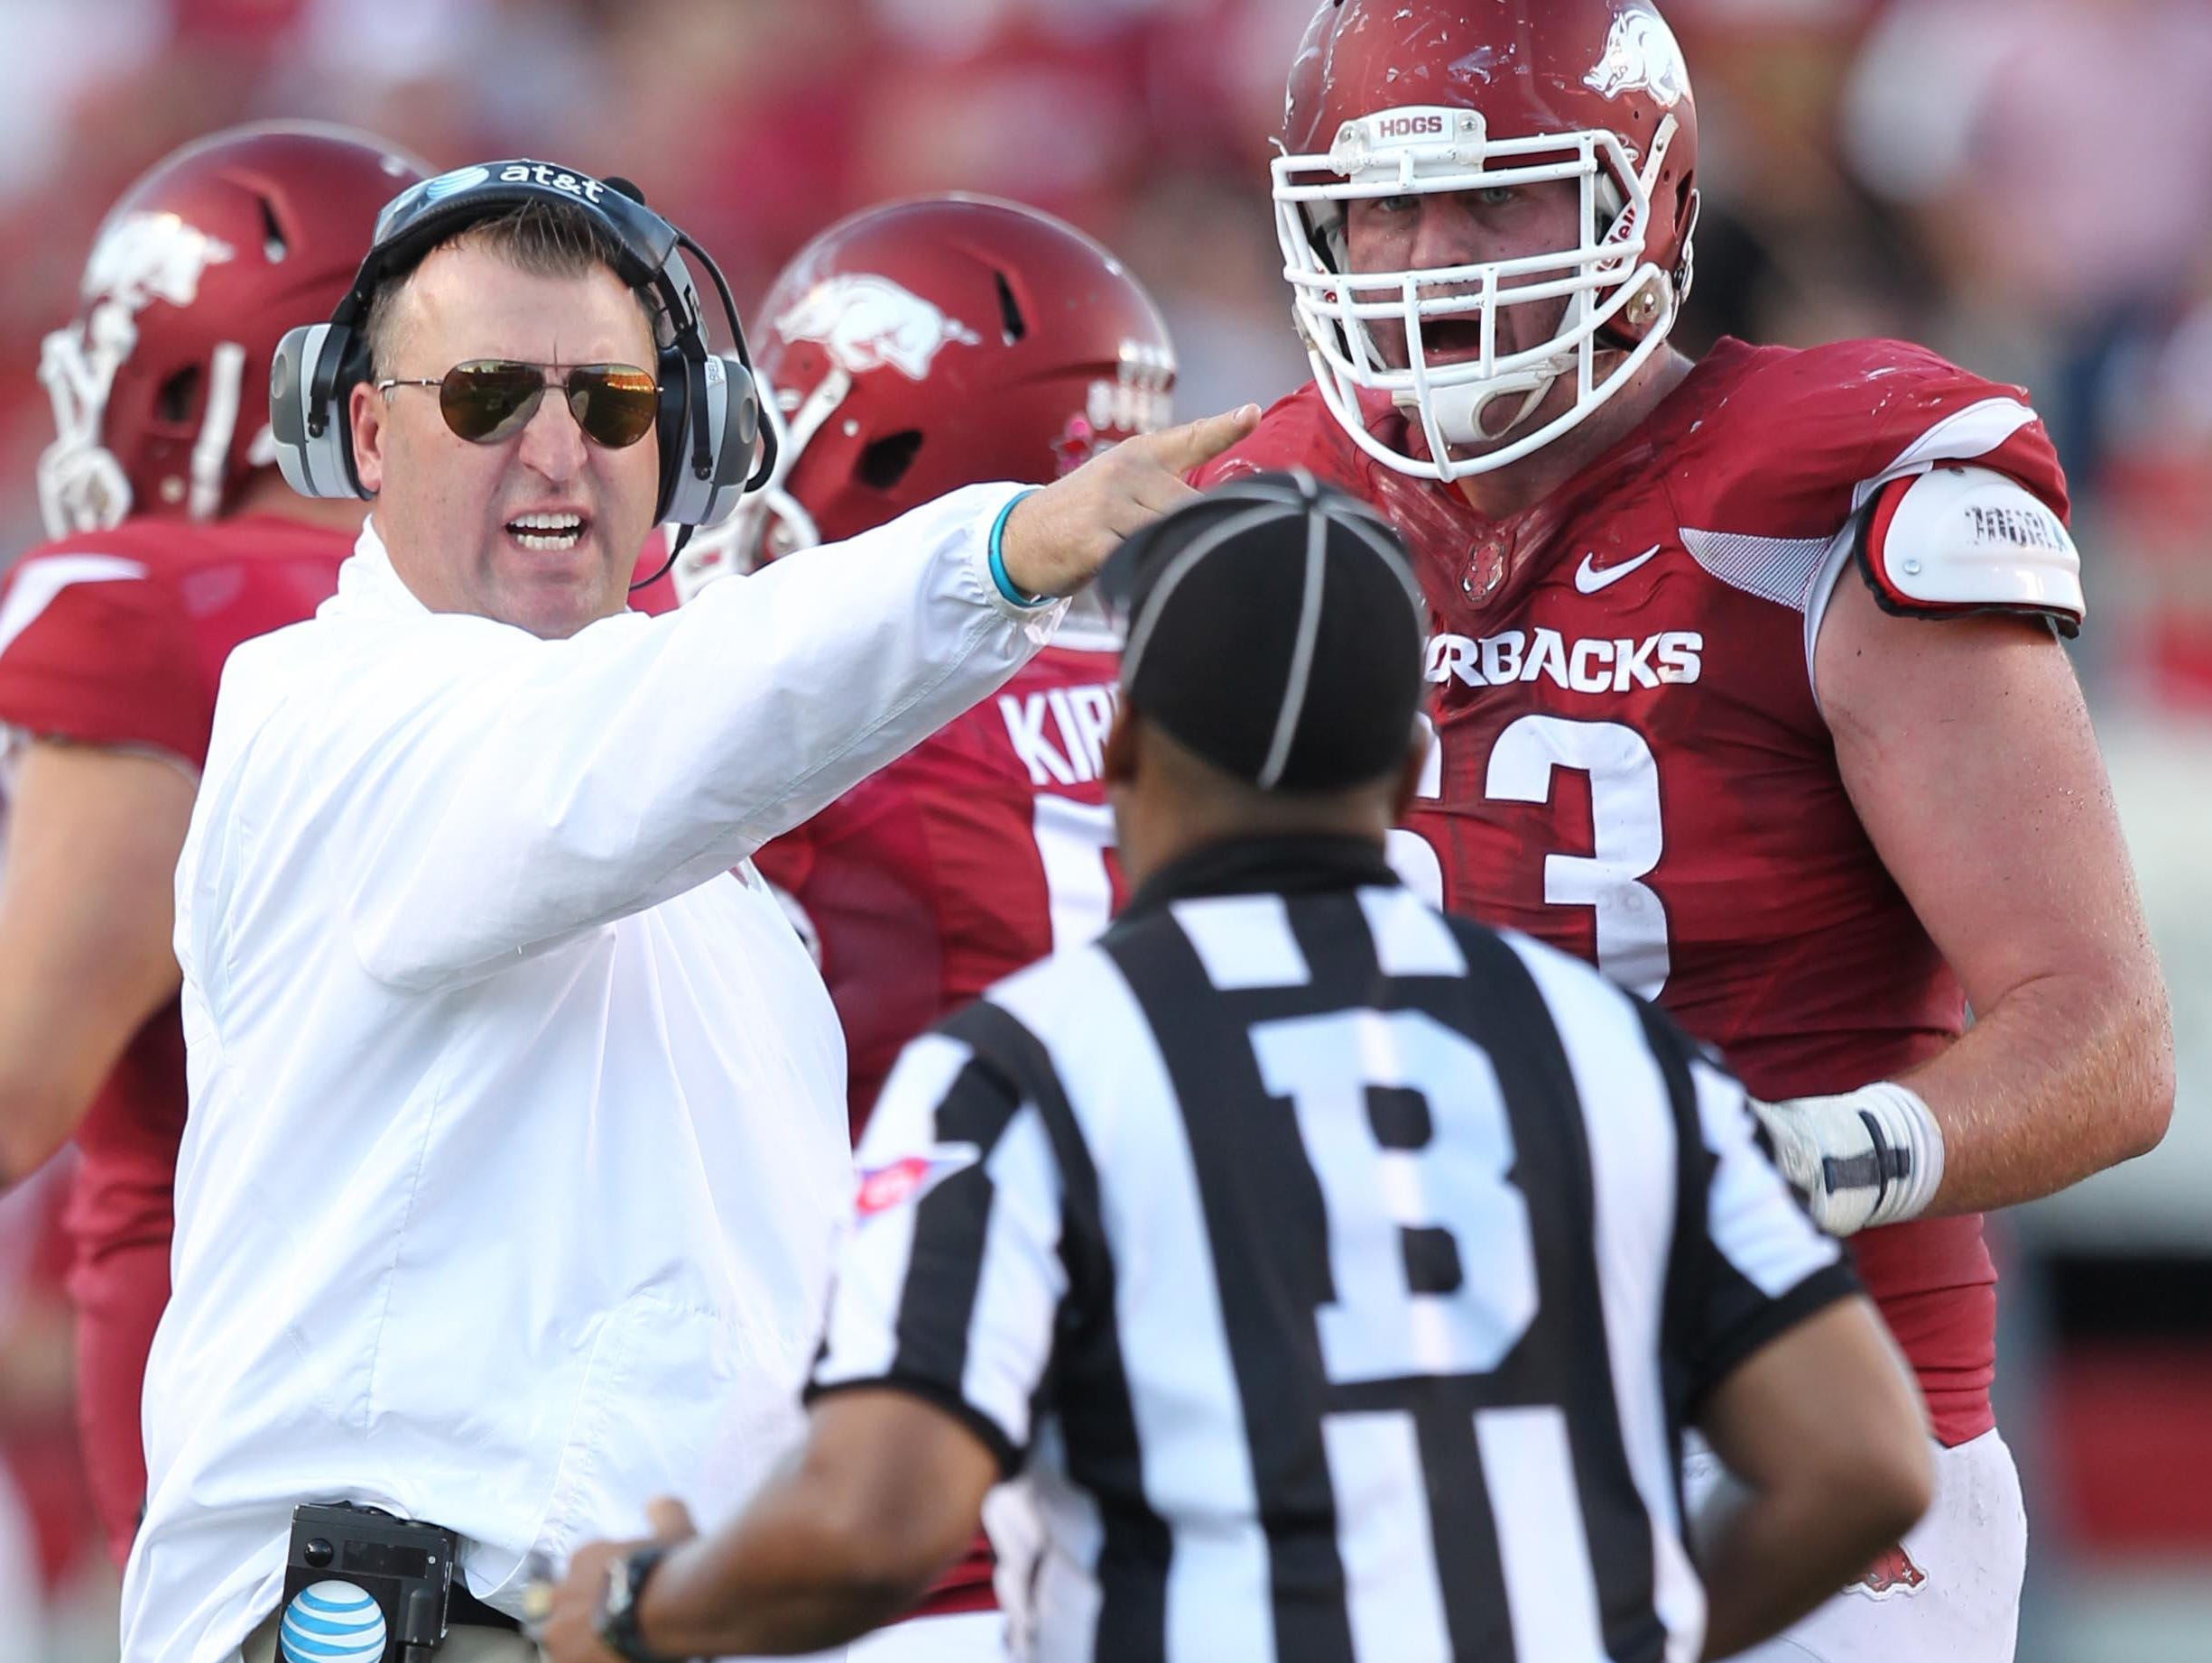 By exceeding expectations and guiding Arkansas to a dominant Texas Bowl victory over Texas, Bret Bielema cashed in after last season, receiving a two-year extension and raise that placed him in the SEC's $4 million club.